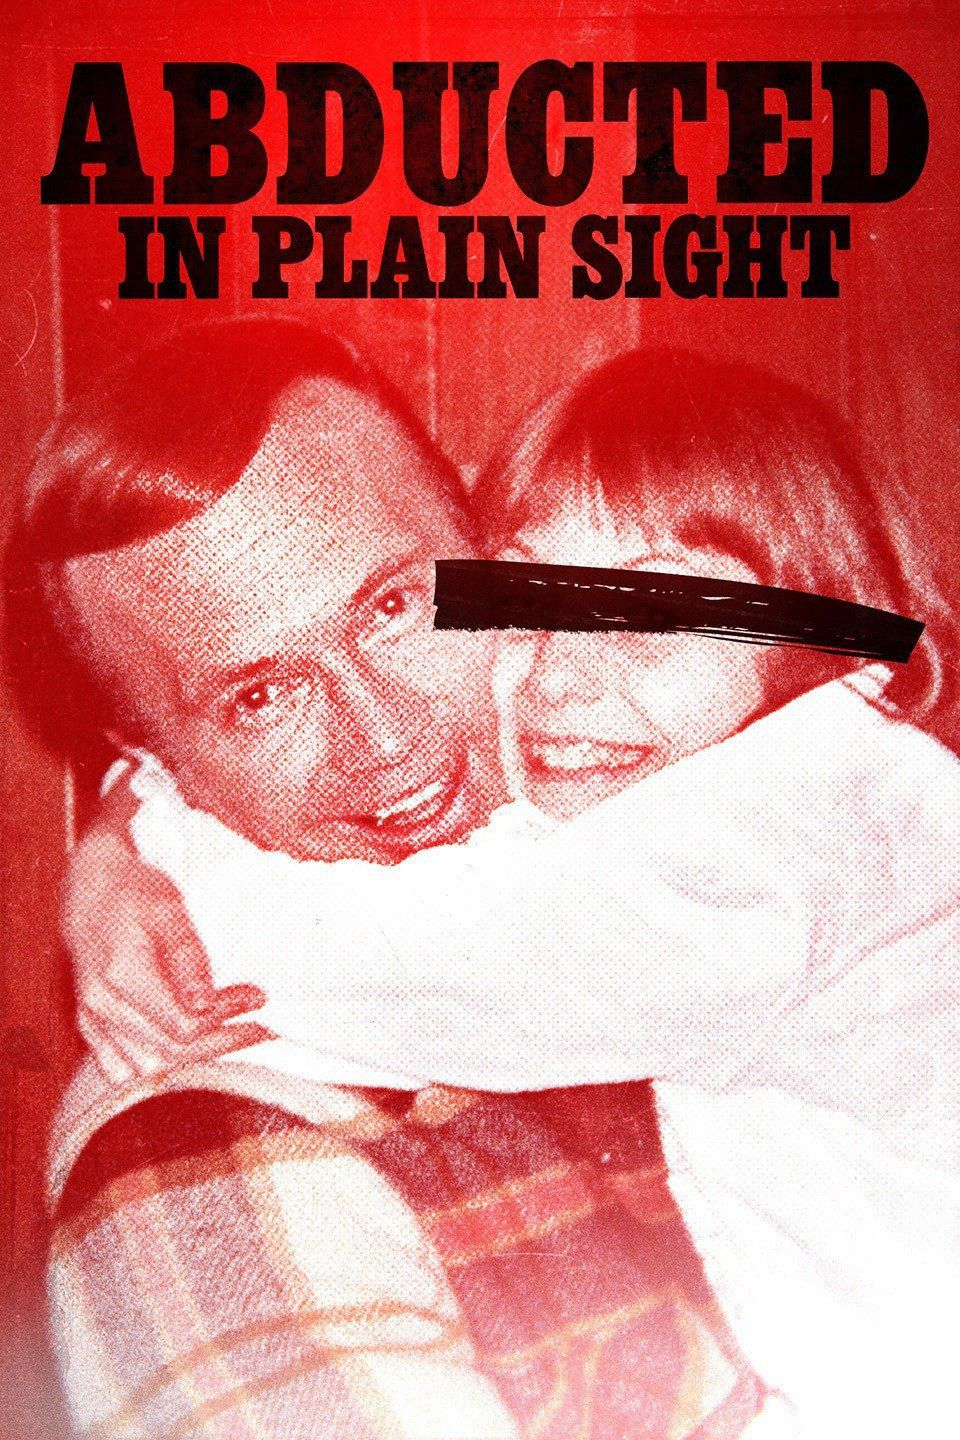 L'ENFANCE VOLEE DE JAN BROBERG (Abducted in plain Sight)